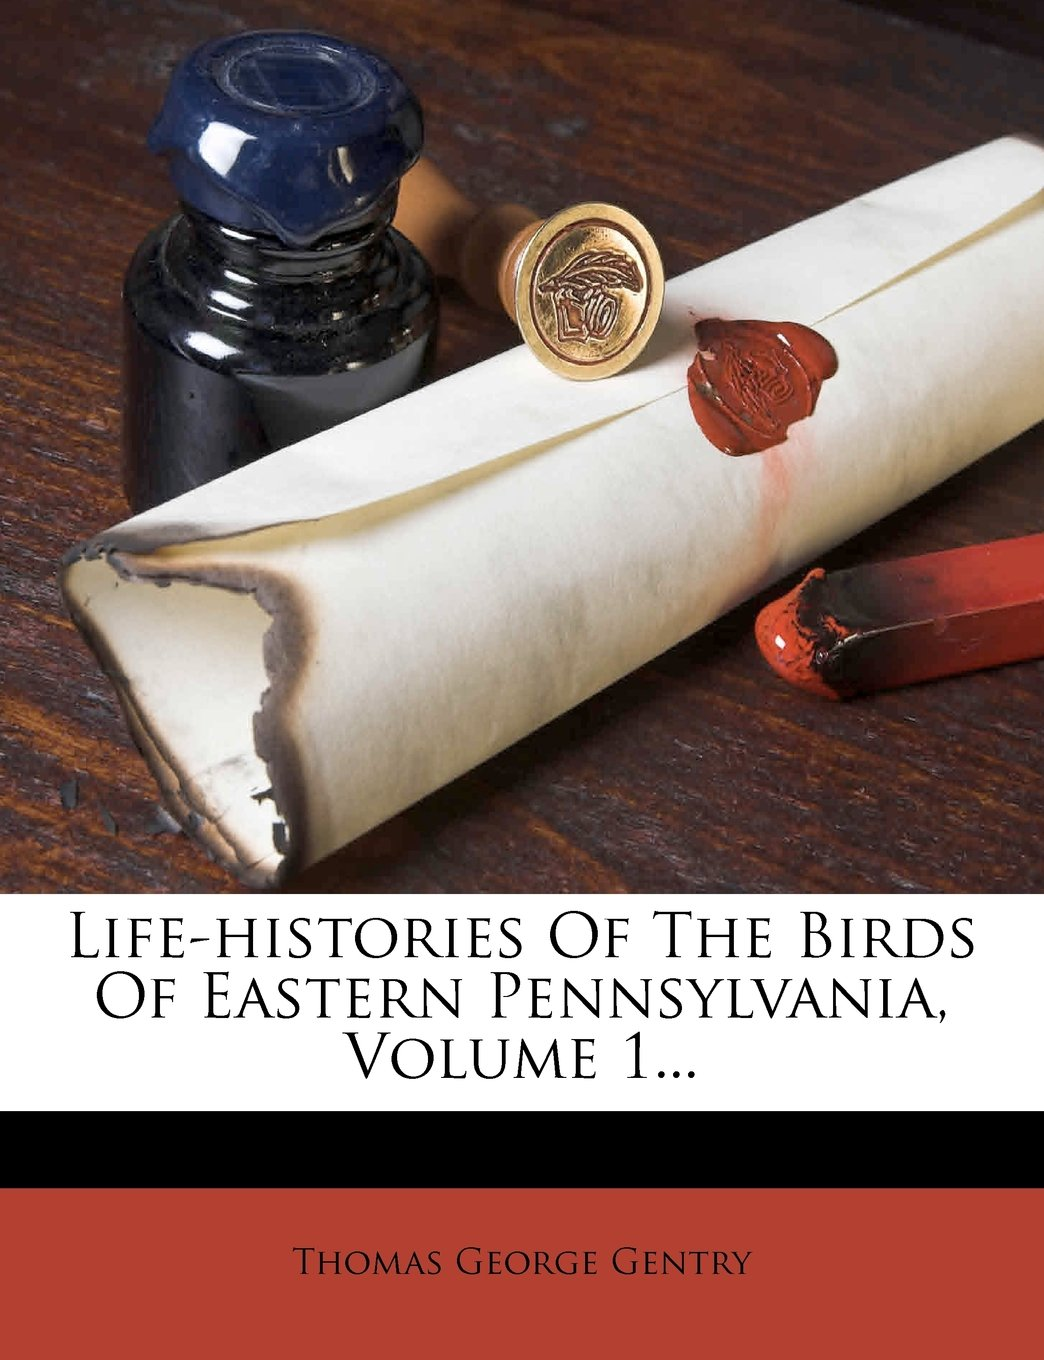 Life-Histories of the Birds of Eastern Pennsylvania, Volume 1... pdf